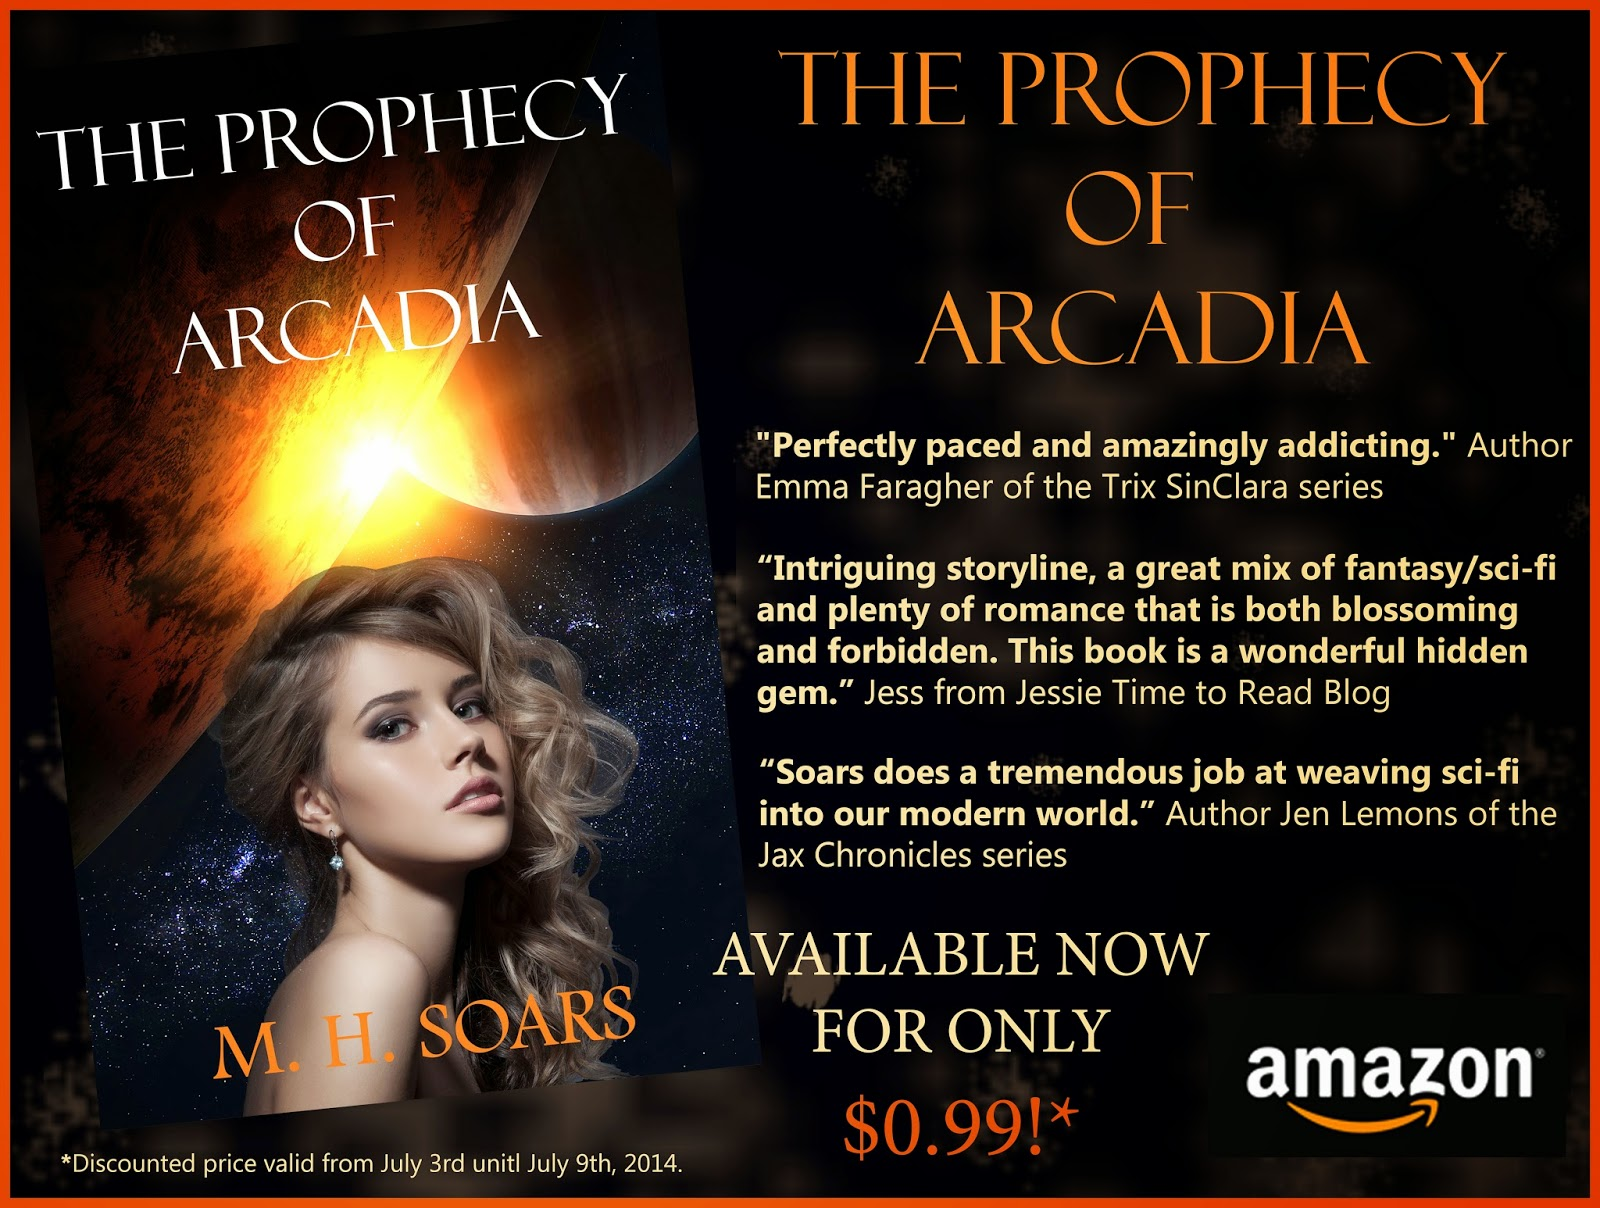 http://www.amazon.com/Prophecy-Arcadia-Arcadian-Wars-Book-ebook/dp/B00HX8UVXS/ref=sr_1_1_title_0_main?s=books&ie=UTF8&qid=1404338185&sr=1-1&keywords=the+prophecy+of+arcadia